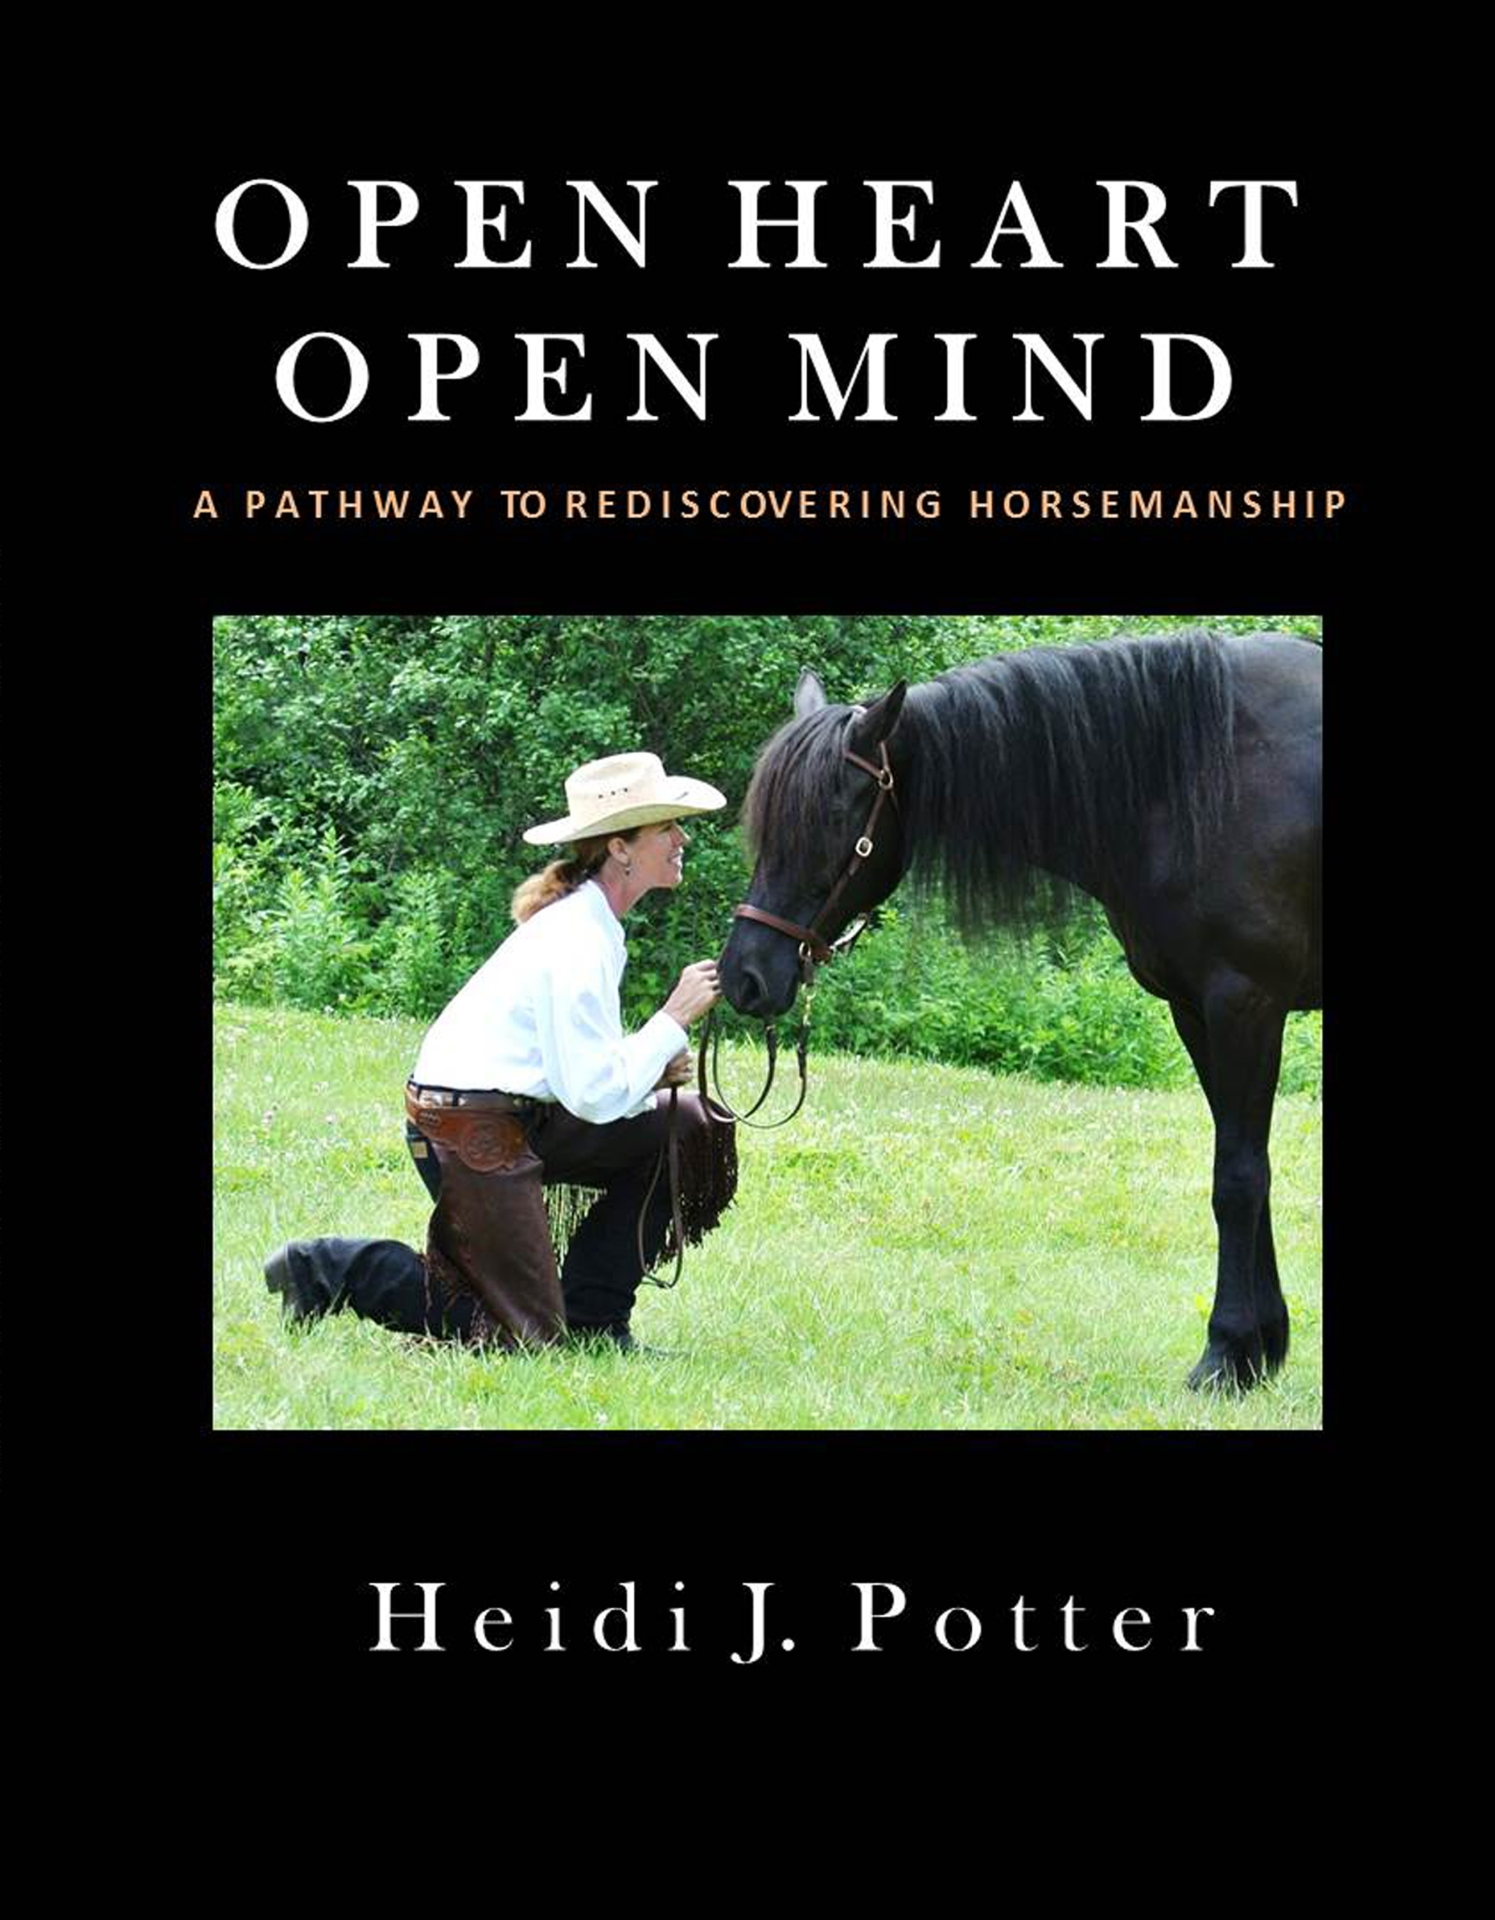 Open Heart Open Mind the book